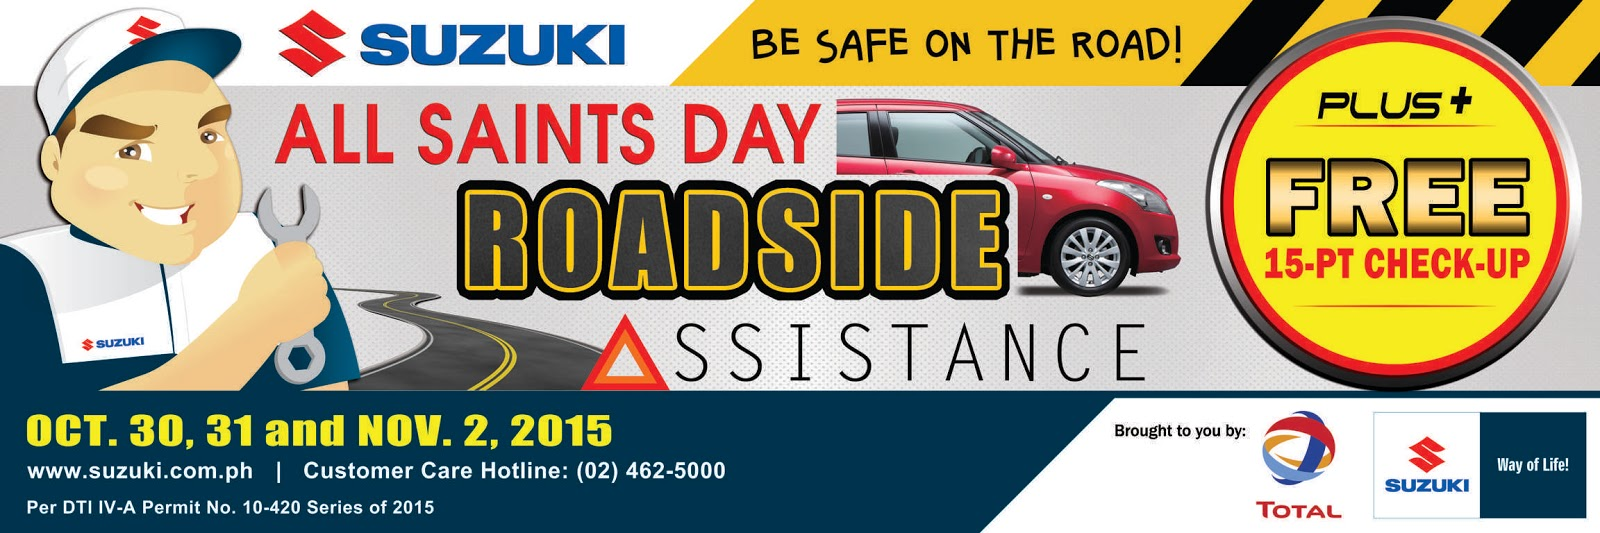 Suzuki All Saints Day Roadside Assistance